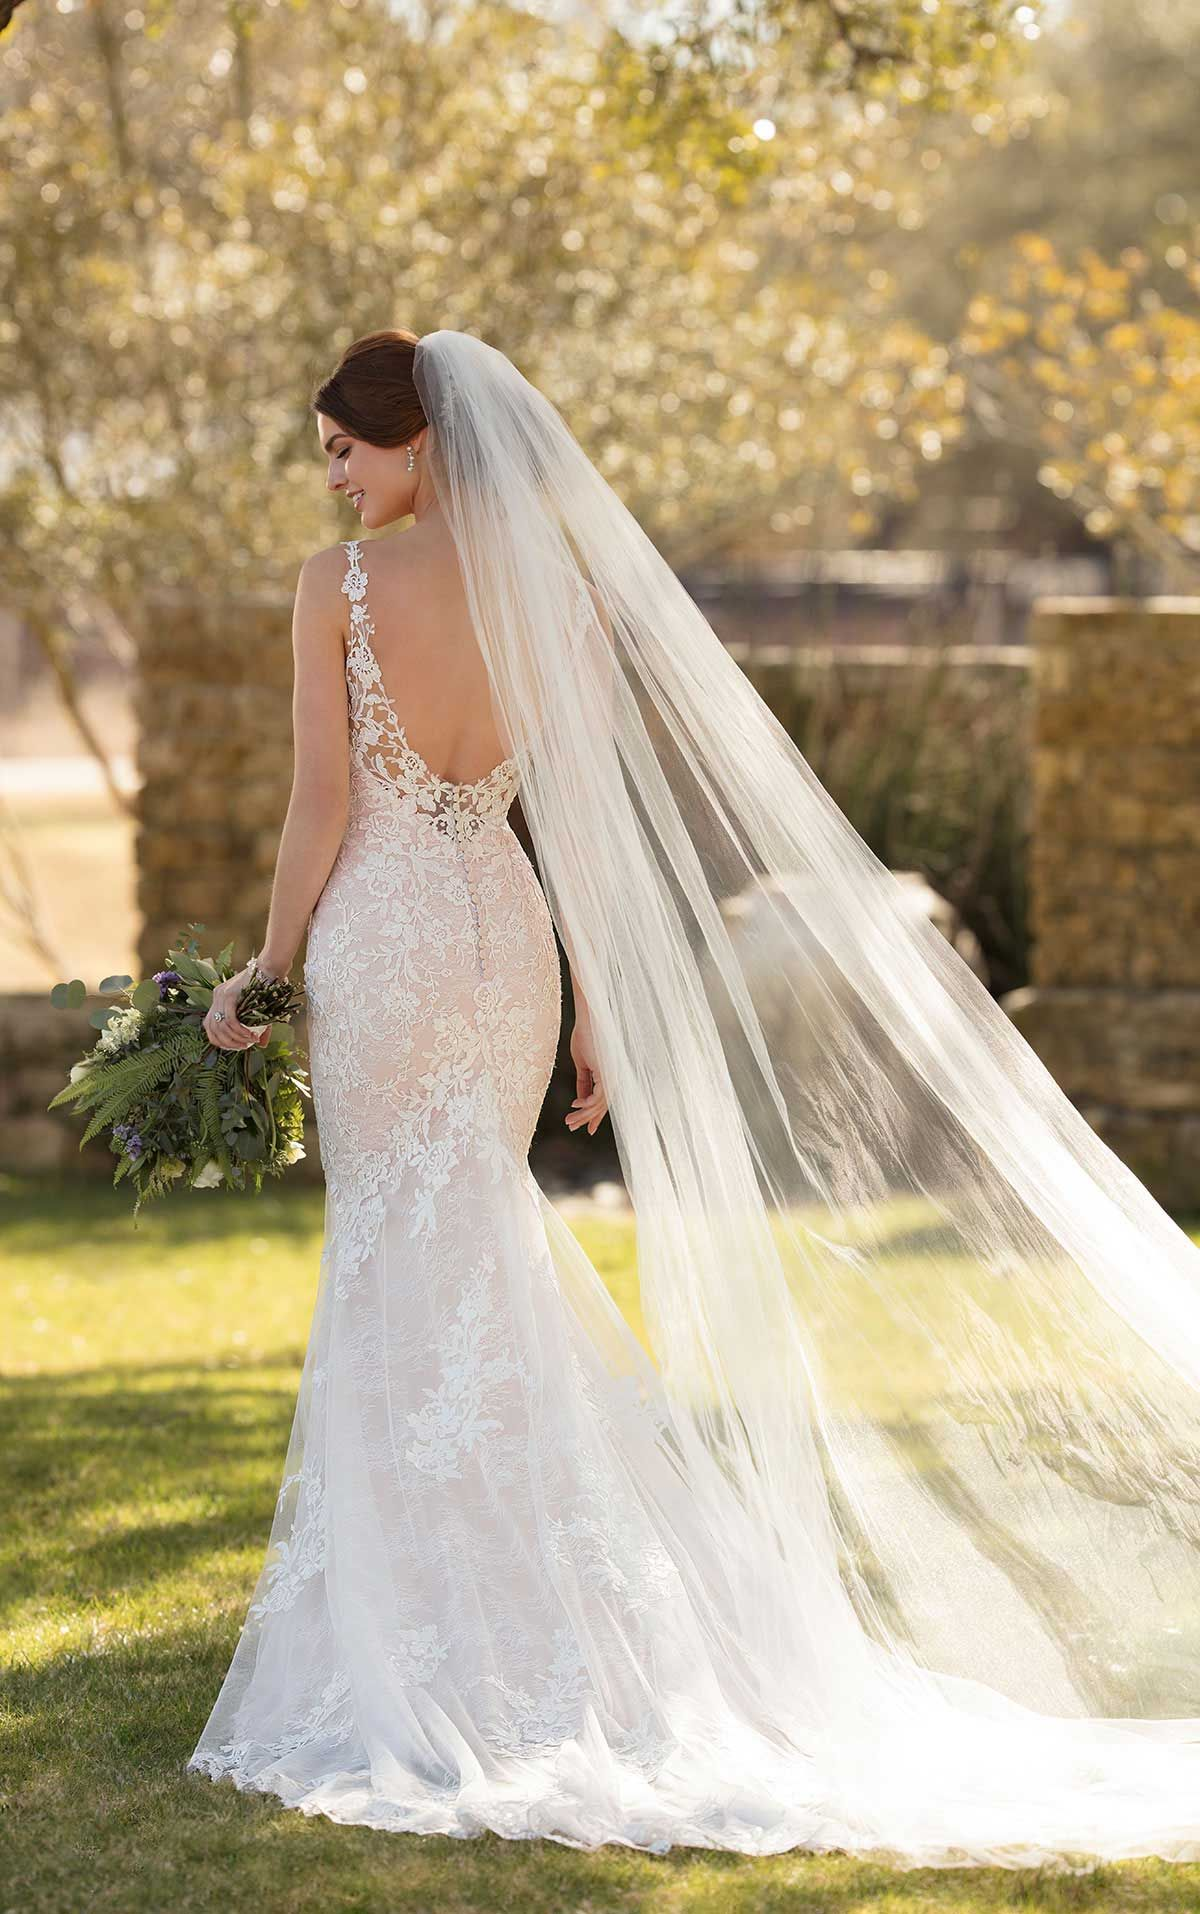 Low back lace mermaid wedding dress  Fit to flare lace wedding dress with a low back and illusion